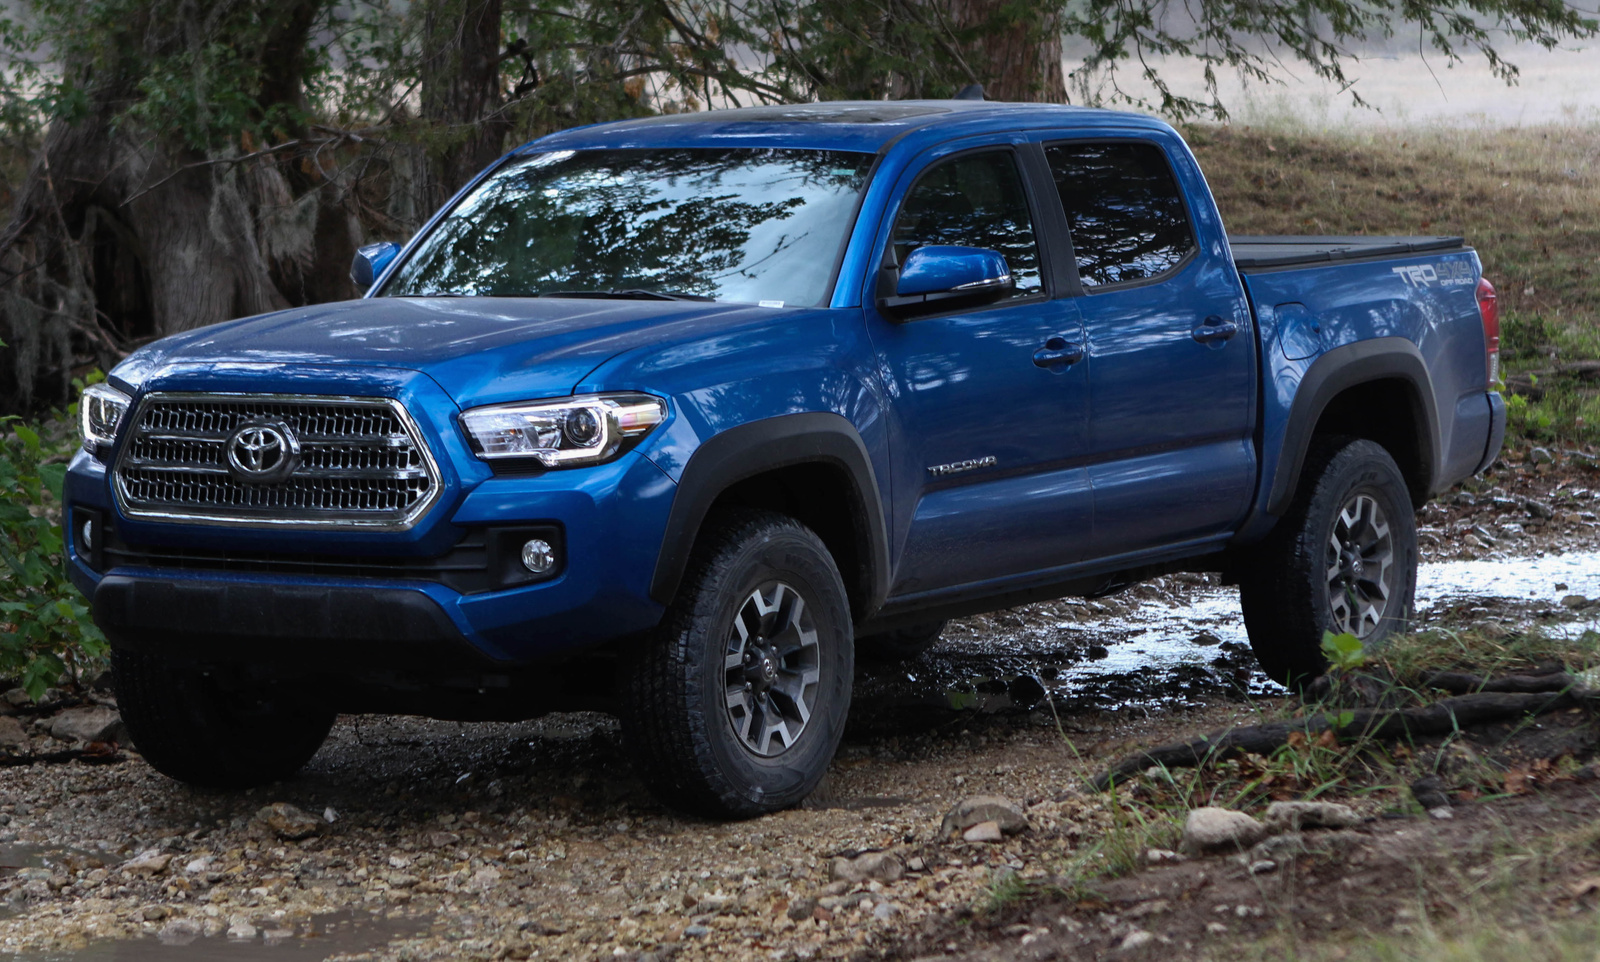 New 2015 / 2016 Toyota Tacoma For Sale - CarGurus